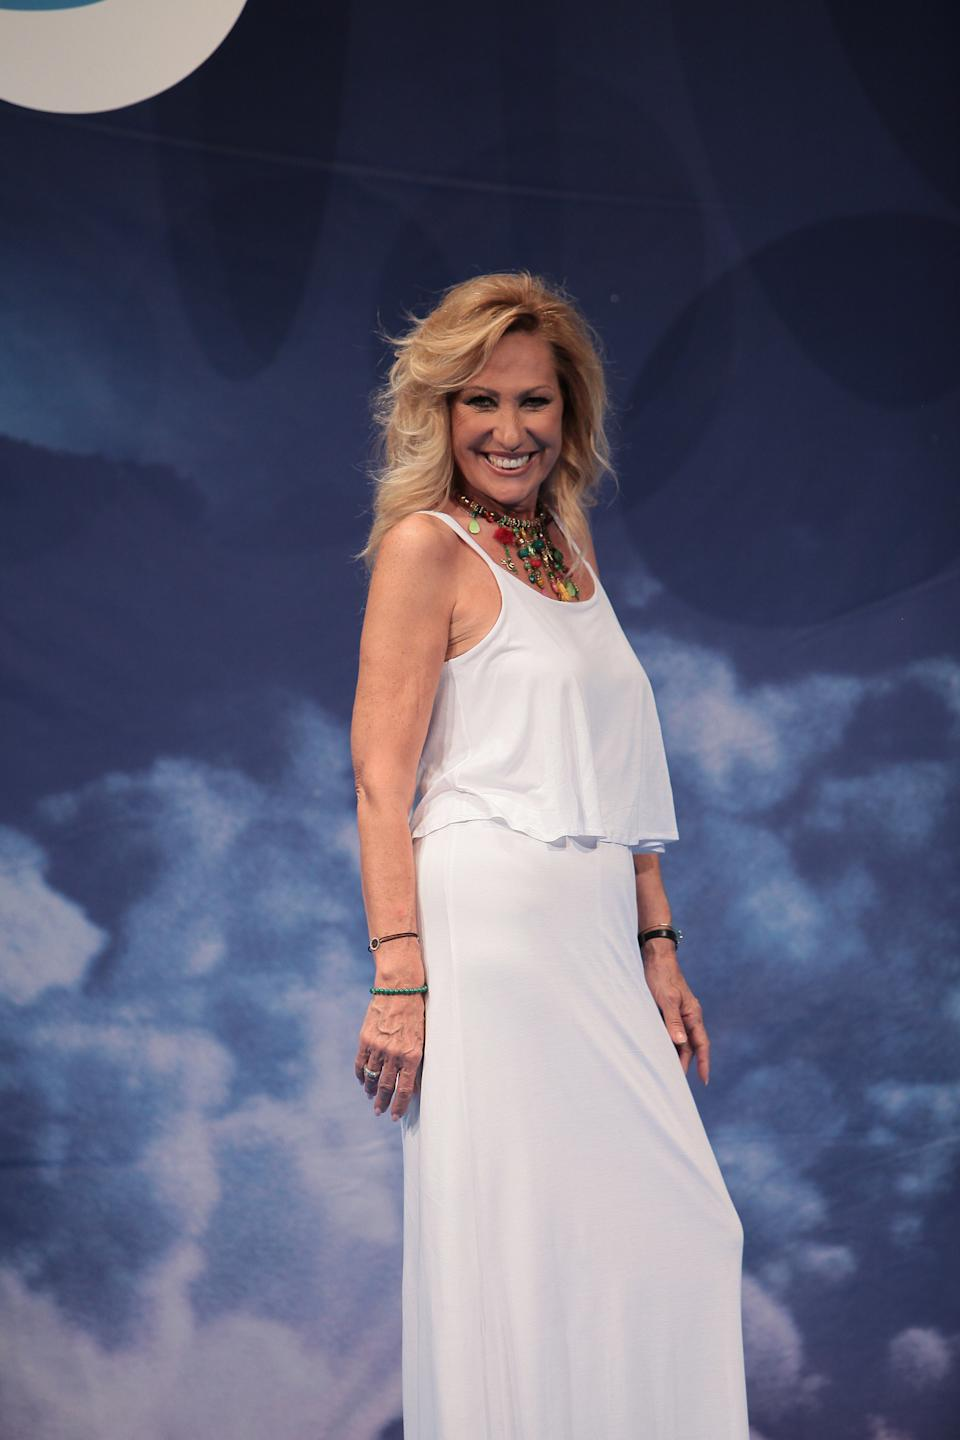 MADRID, SPAIN - JULY 07:  Rosa Benito attends the party for 'Salvame' Tv programme's 5th anniversary on July 7, 2014 in Madrid, Spain.  (Photo by Europa Press/Europa Press via Getty Images)